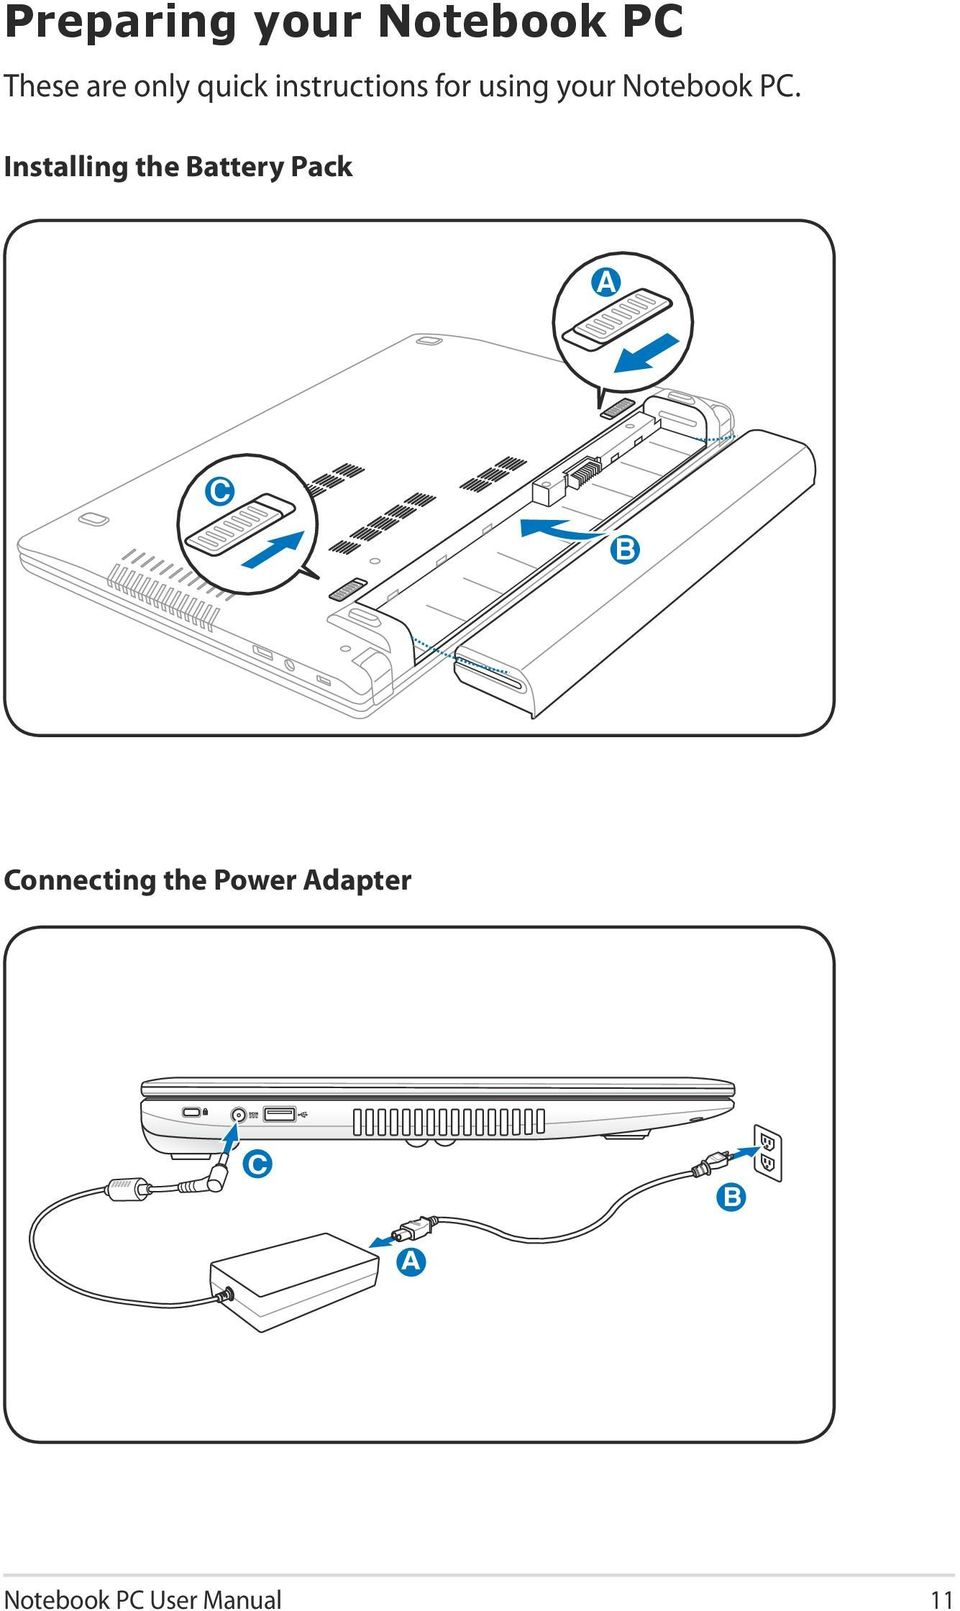 E7169 Notebook Pc User Manual Pdf Hp Pavilion Tx1000 Tablet Block Diagram Installing The Battery Pack B A C Connecting